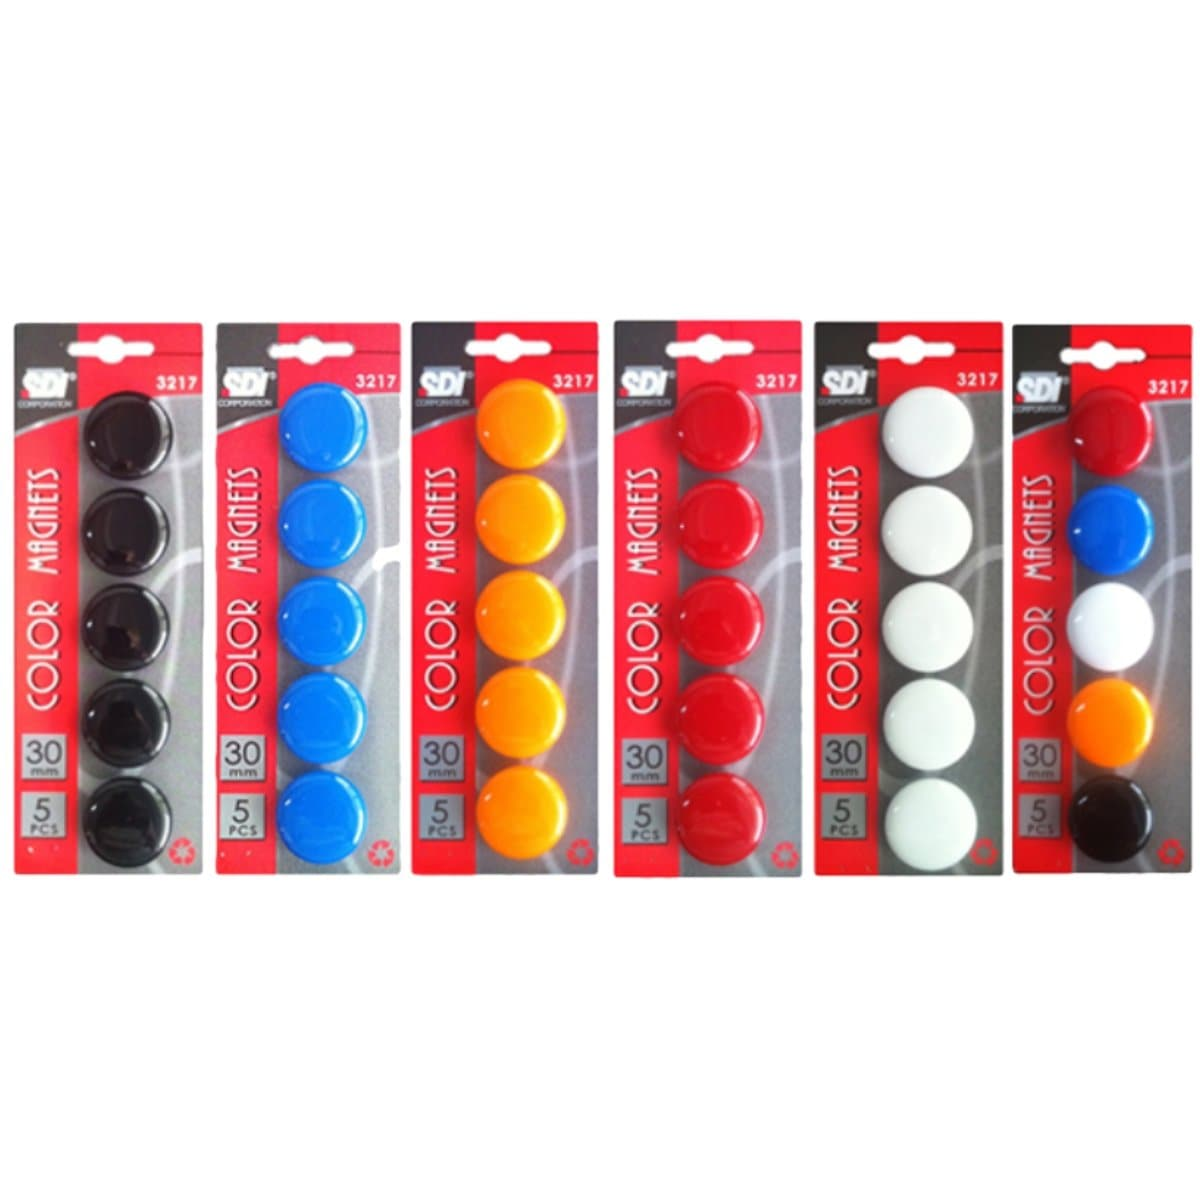 SDI Color Magnets, 30mm, 5/pack, available in Black, Blue, Orange, Red, White or Assorted